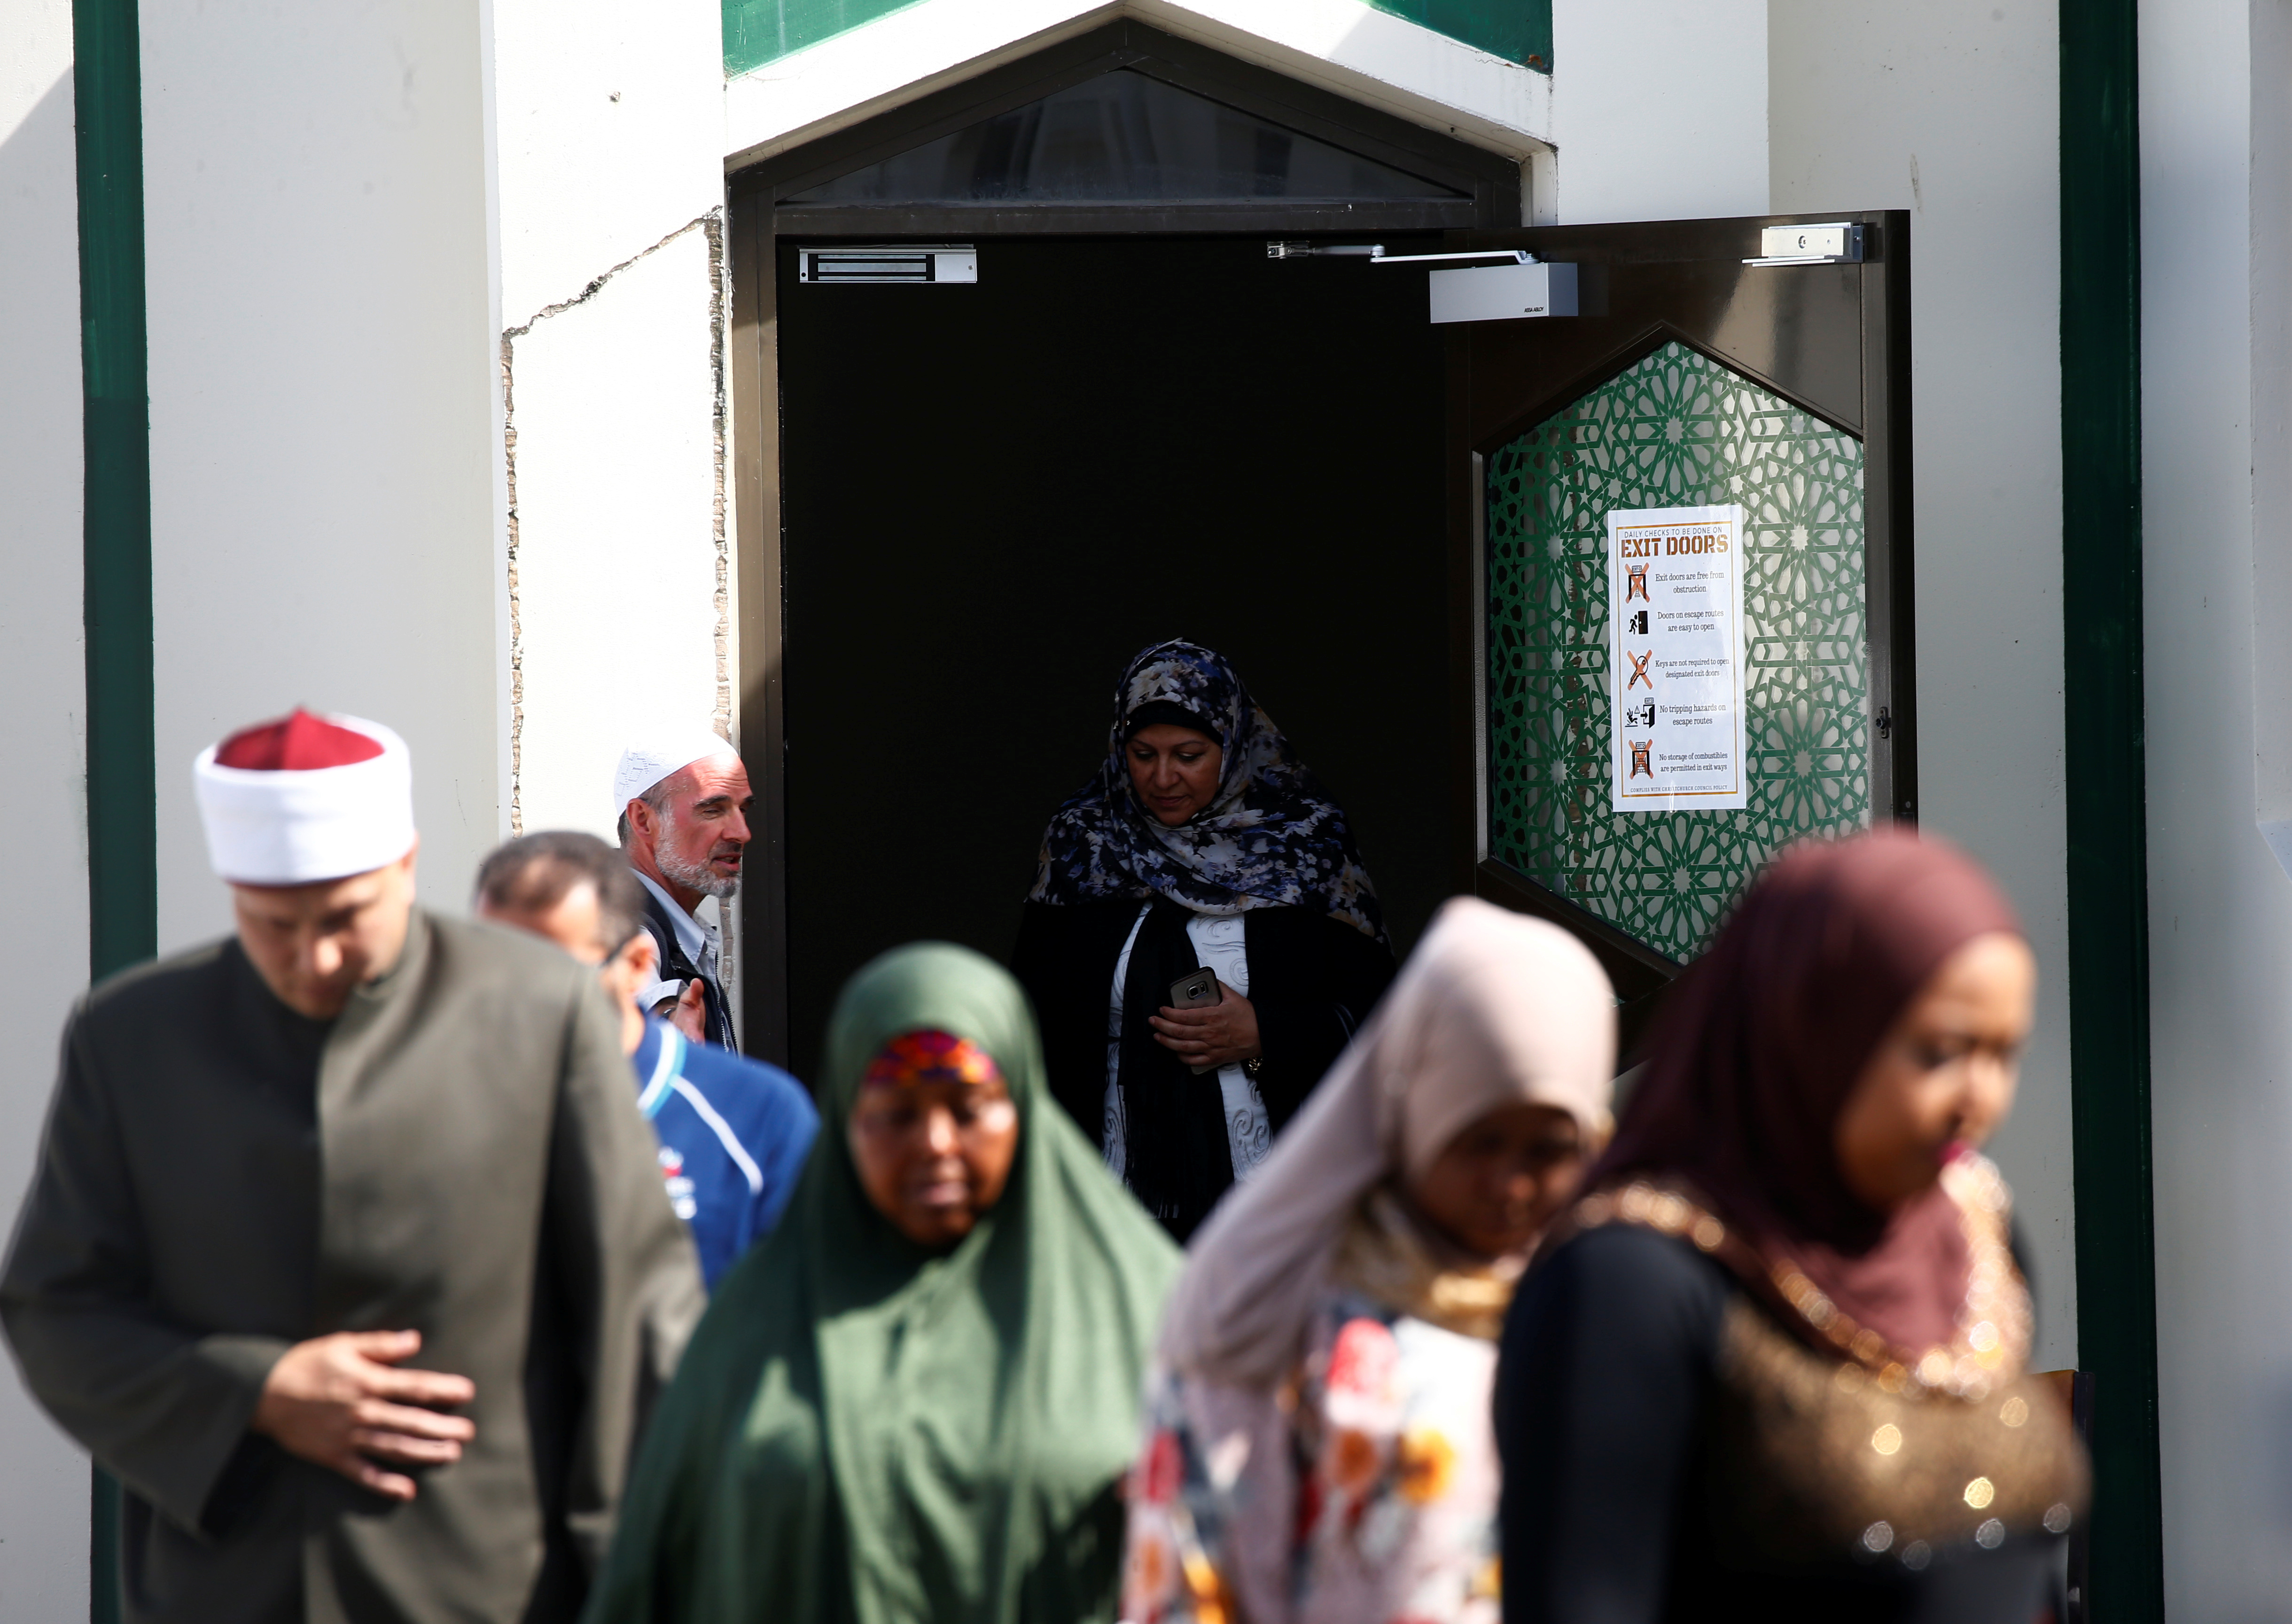 Members of the Muslim community visit Al Noor mosque after it was reopened in Christchurch, New Zealand, March 23, 2019.